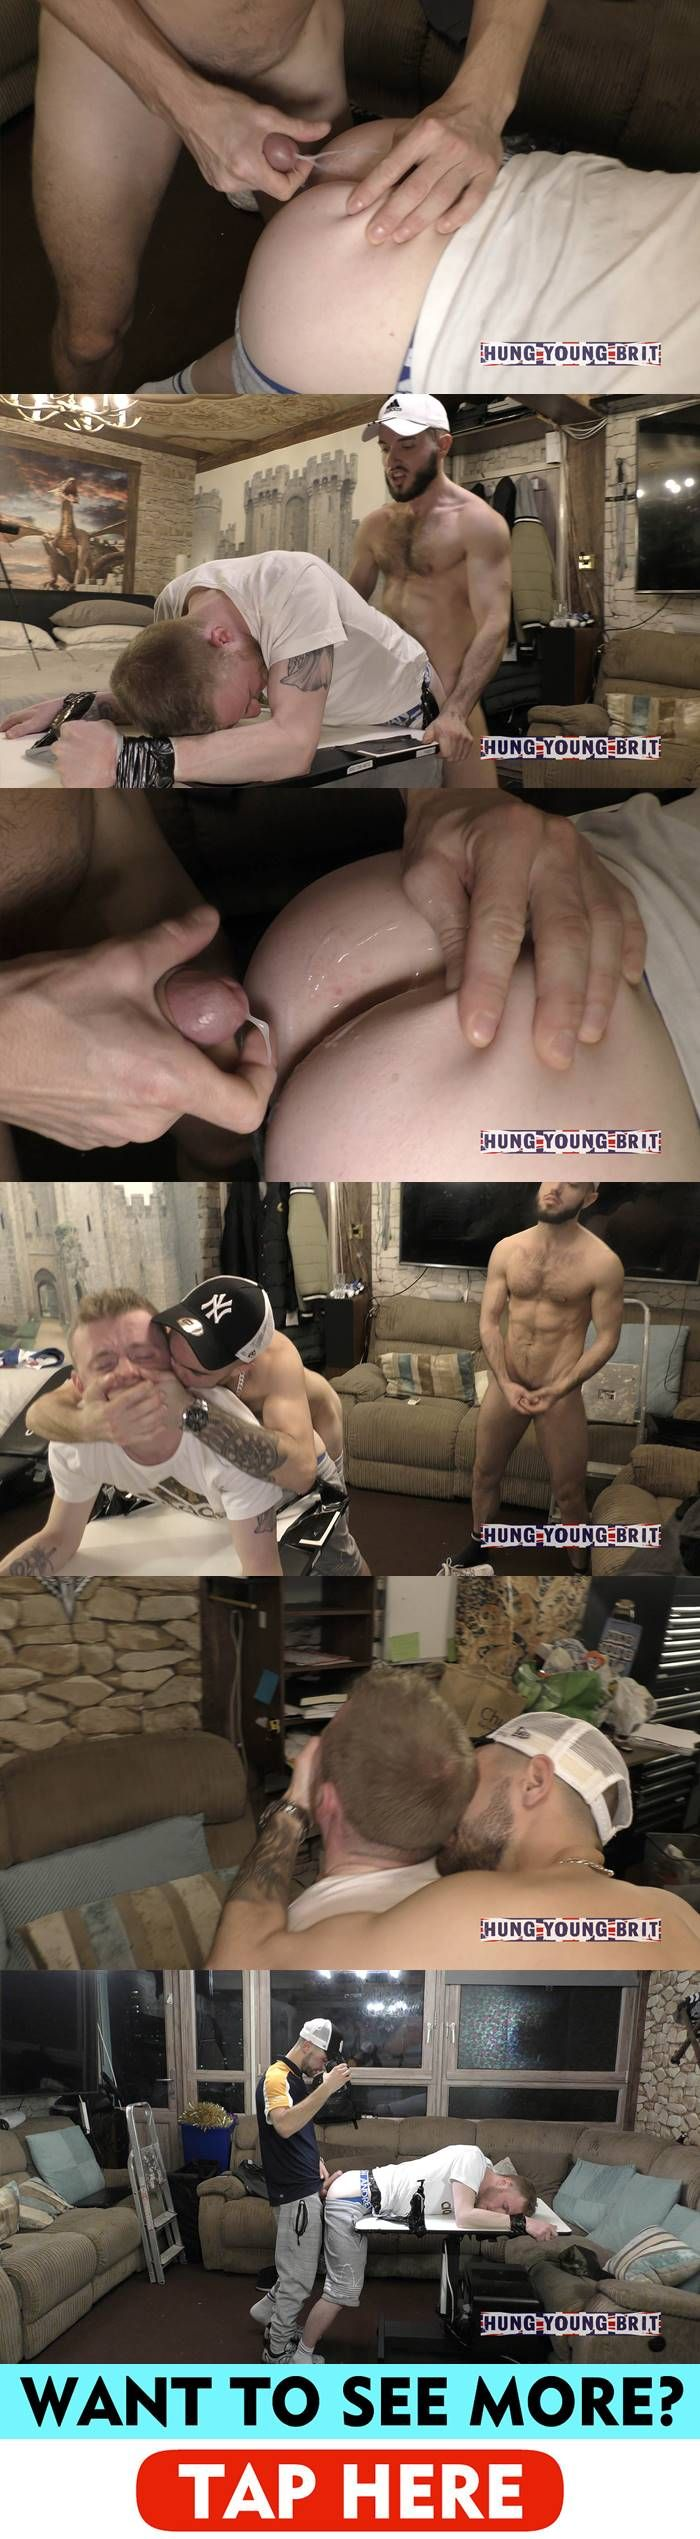 Hung Young Brit: Fucking A Military Stud